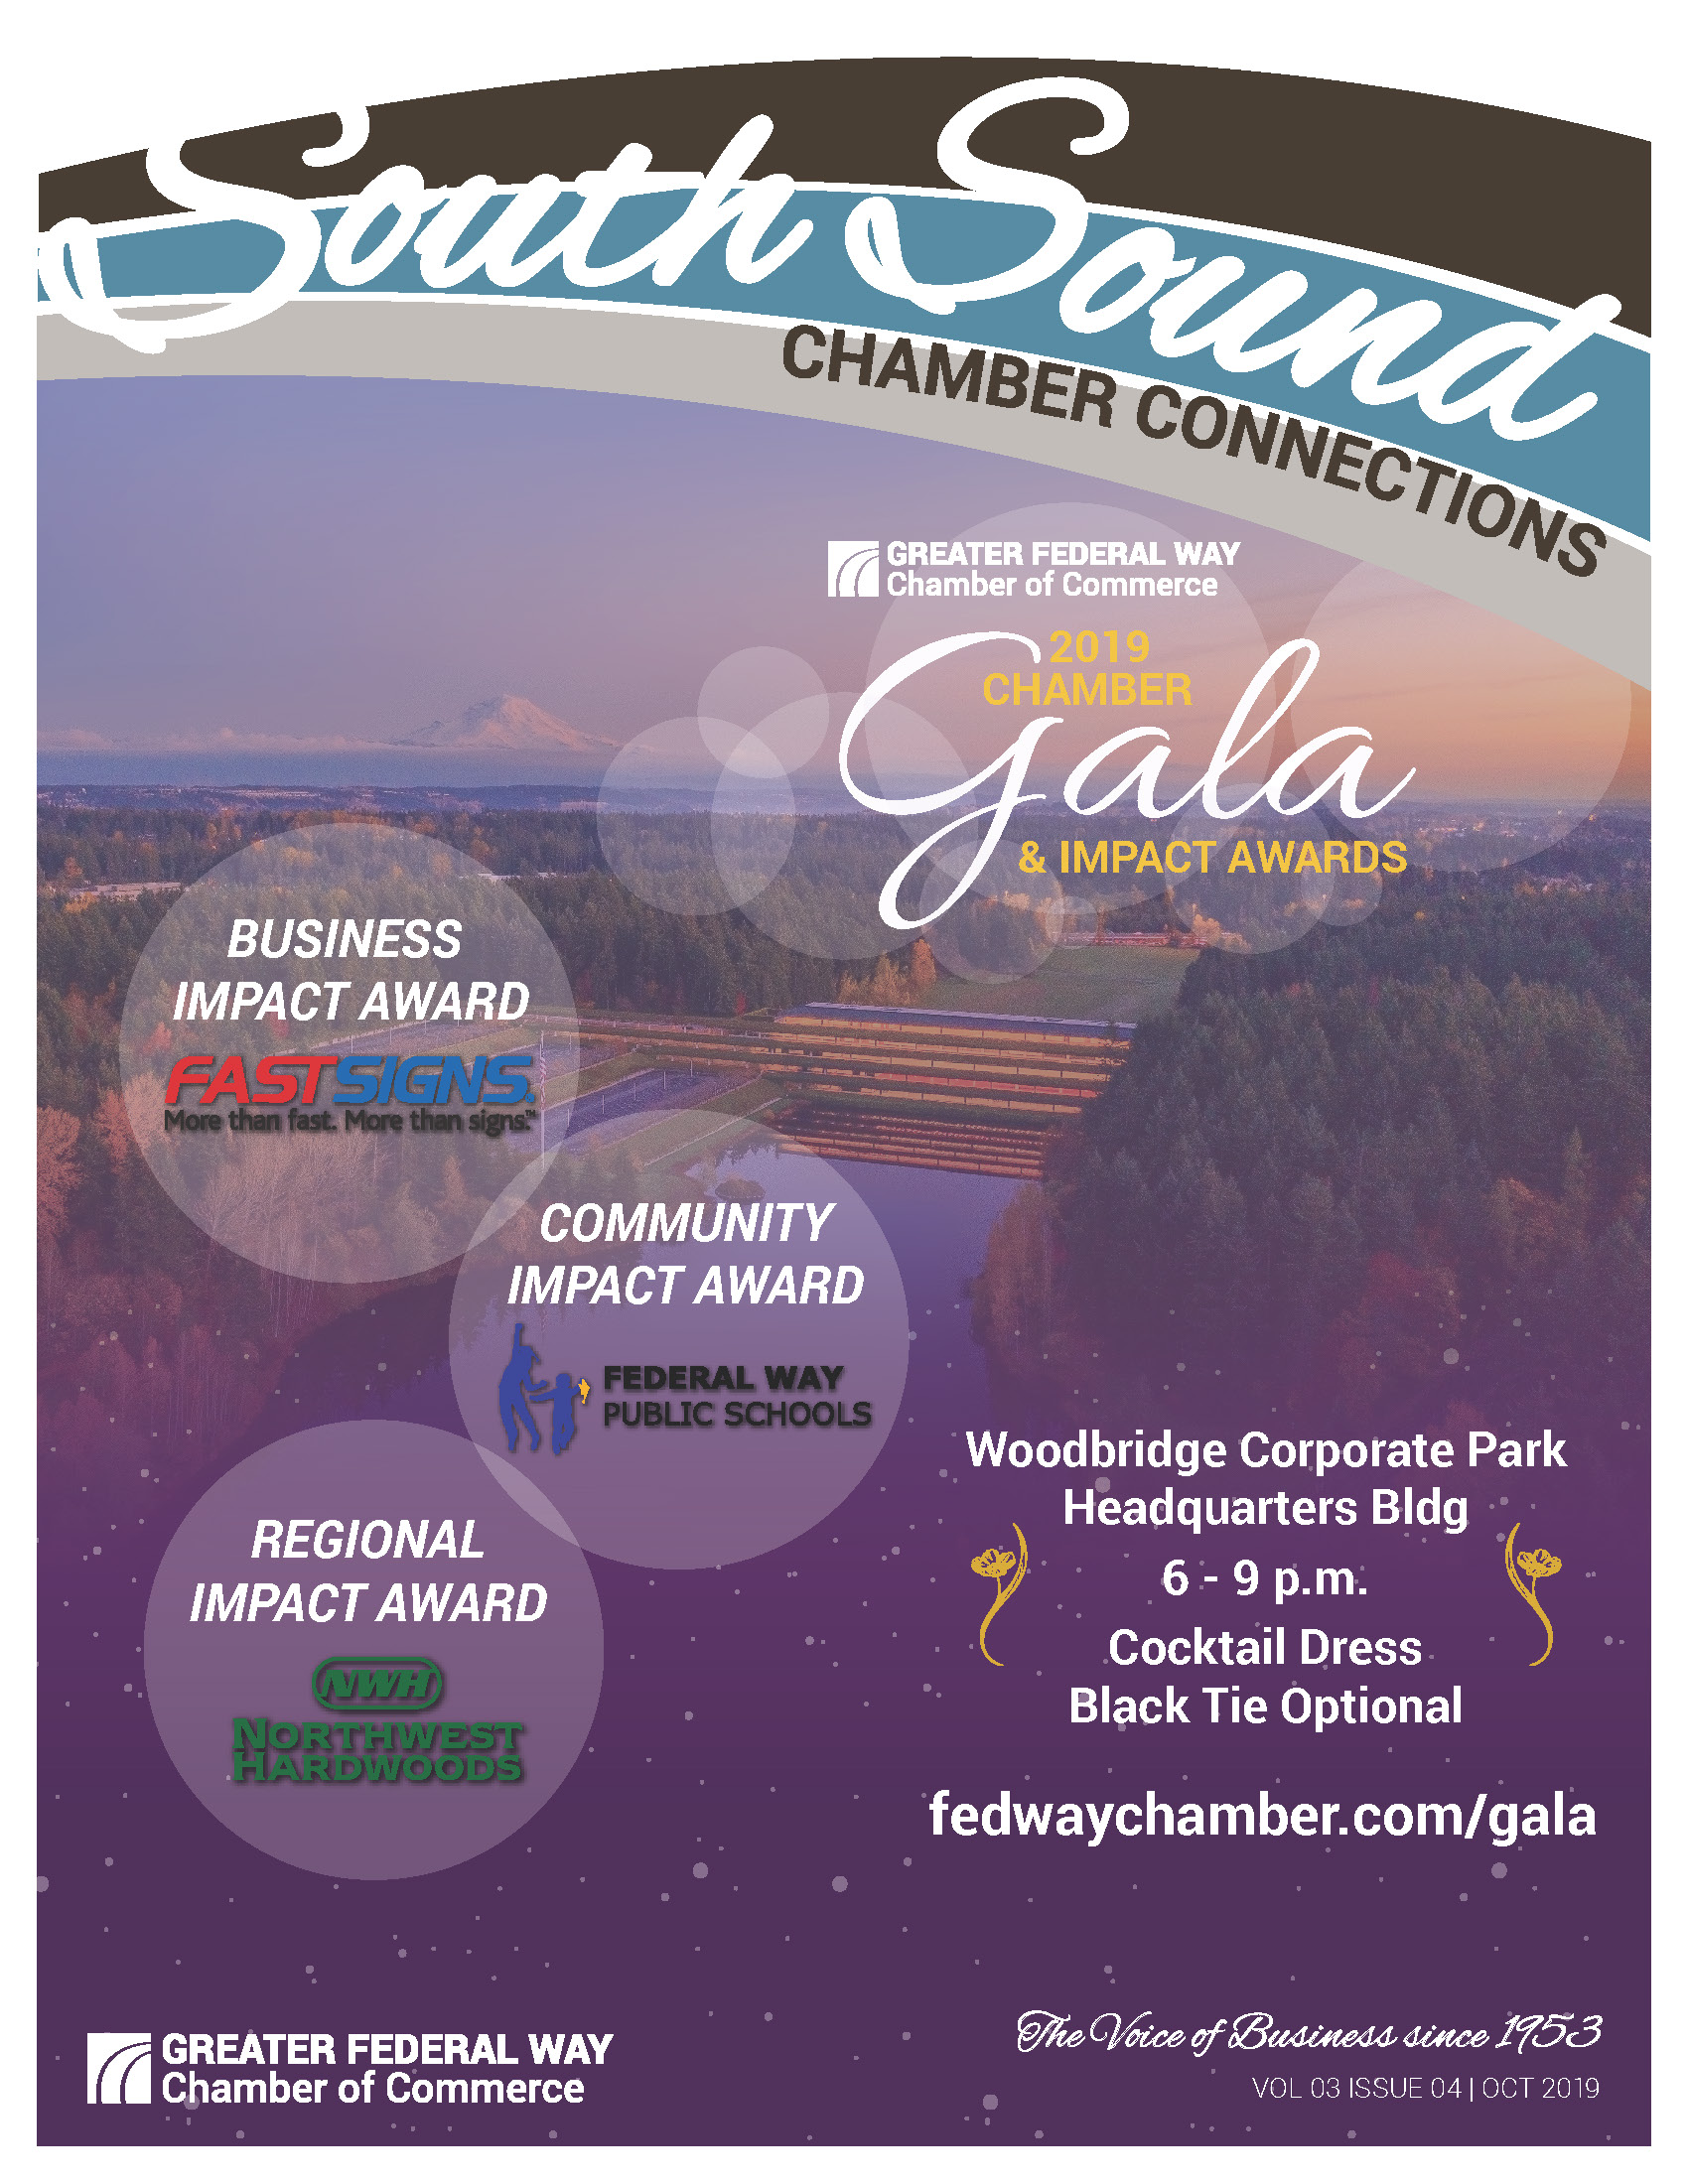 South Sound Chamber Connections - OCT 2019